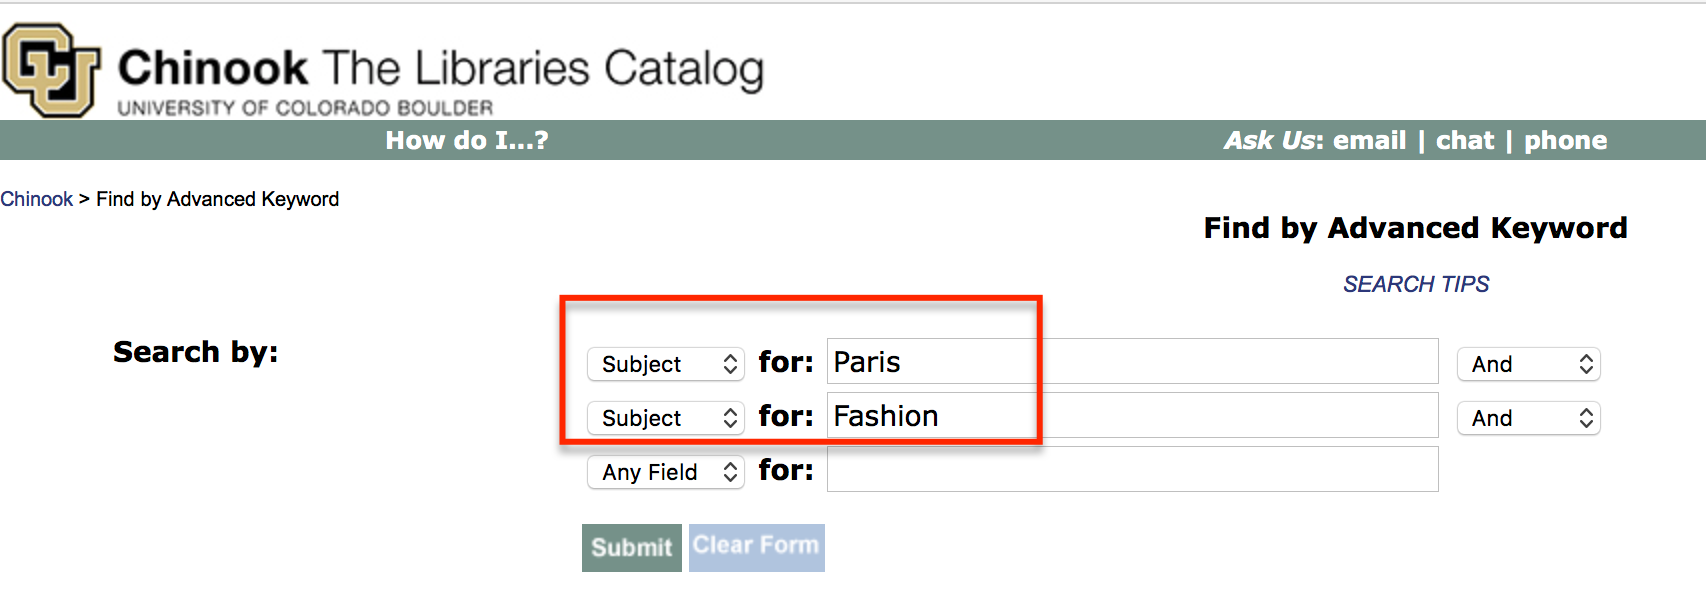 Subject search in Chinook for Parish and Fashion